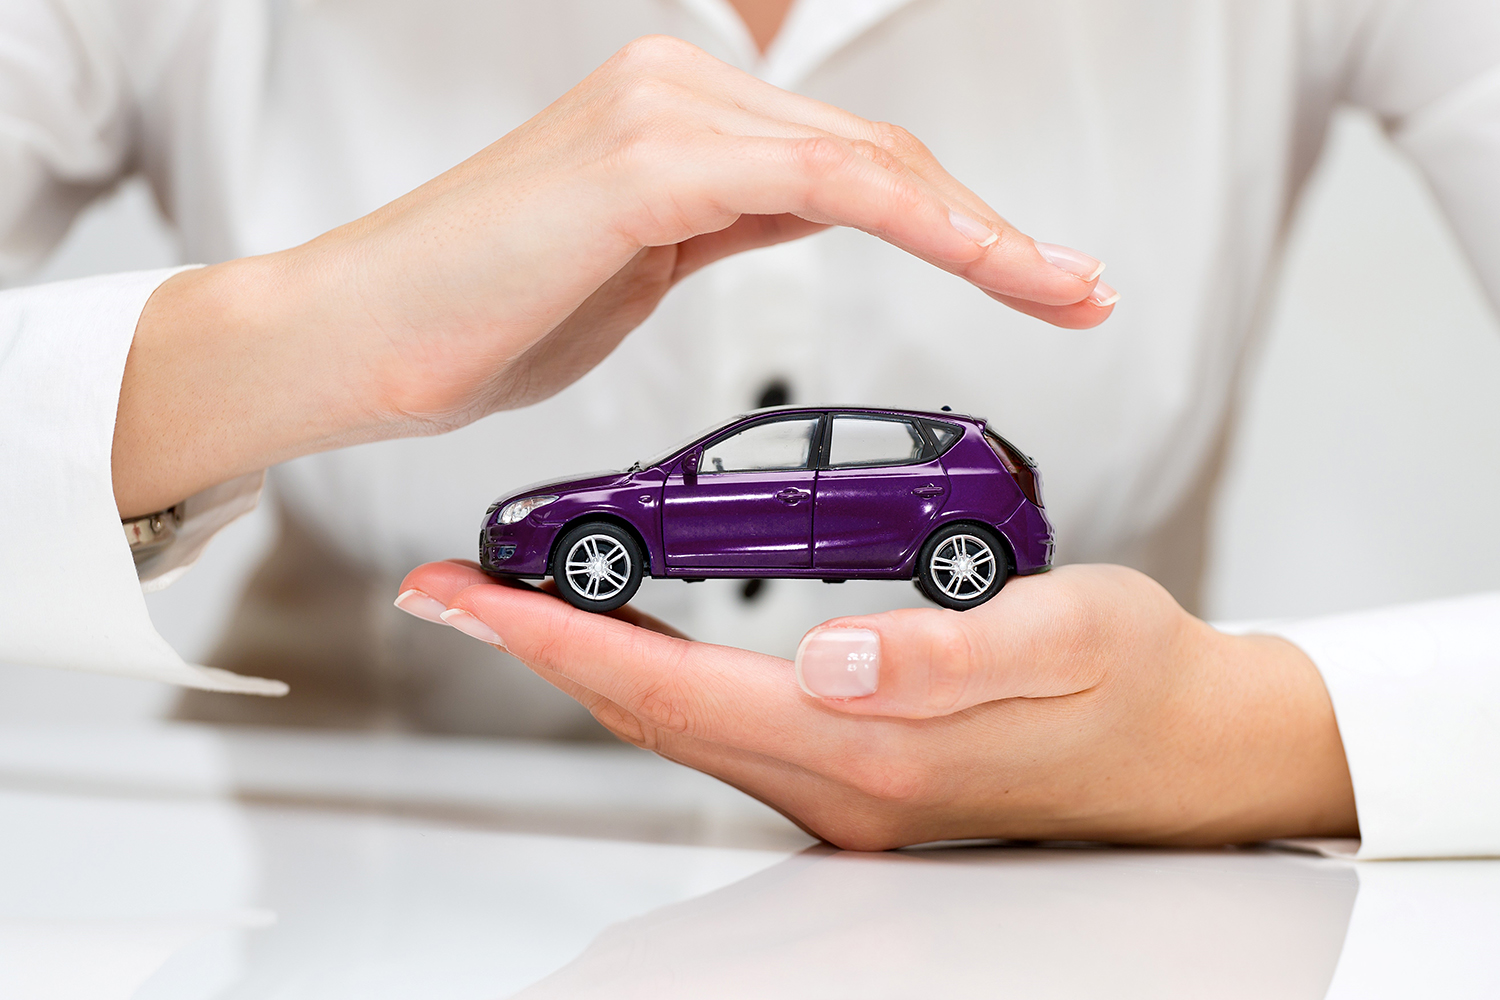 Hands holding purple toy car